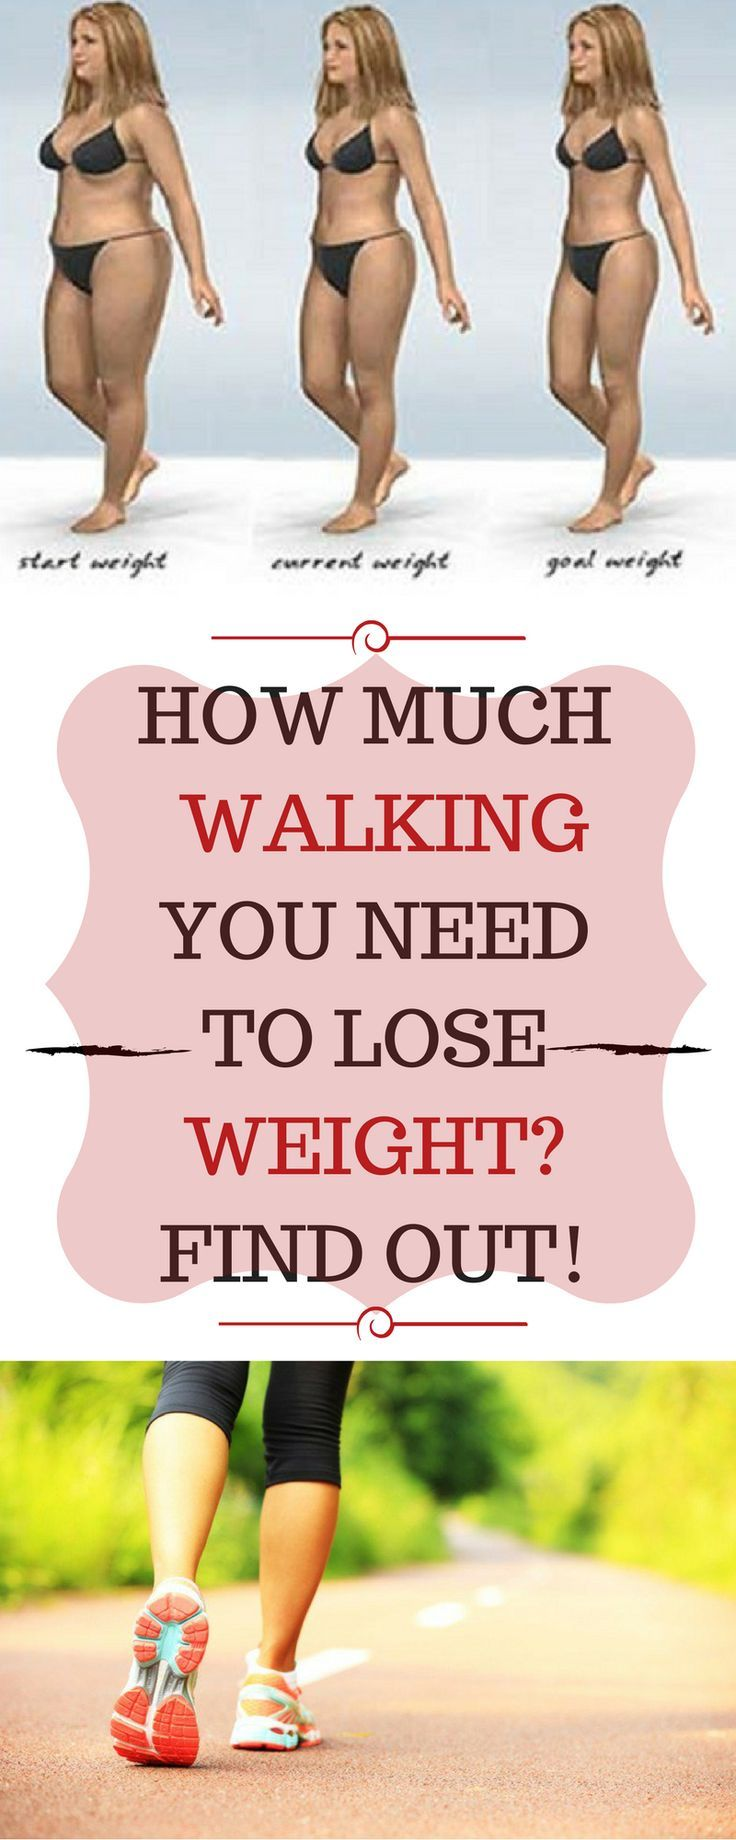 Ideas for weekly weight loss challenges picture 10